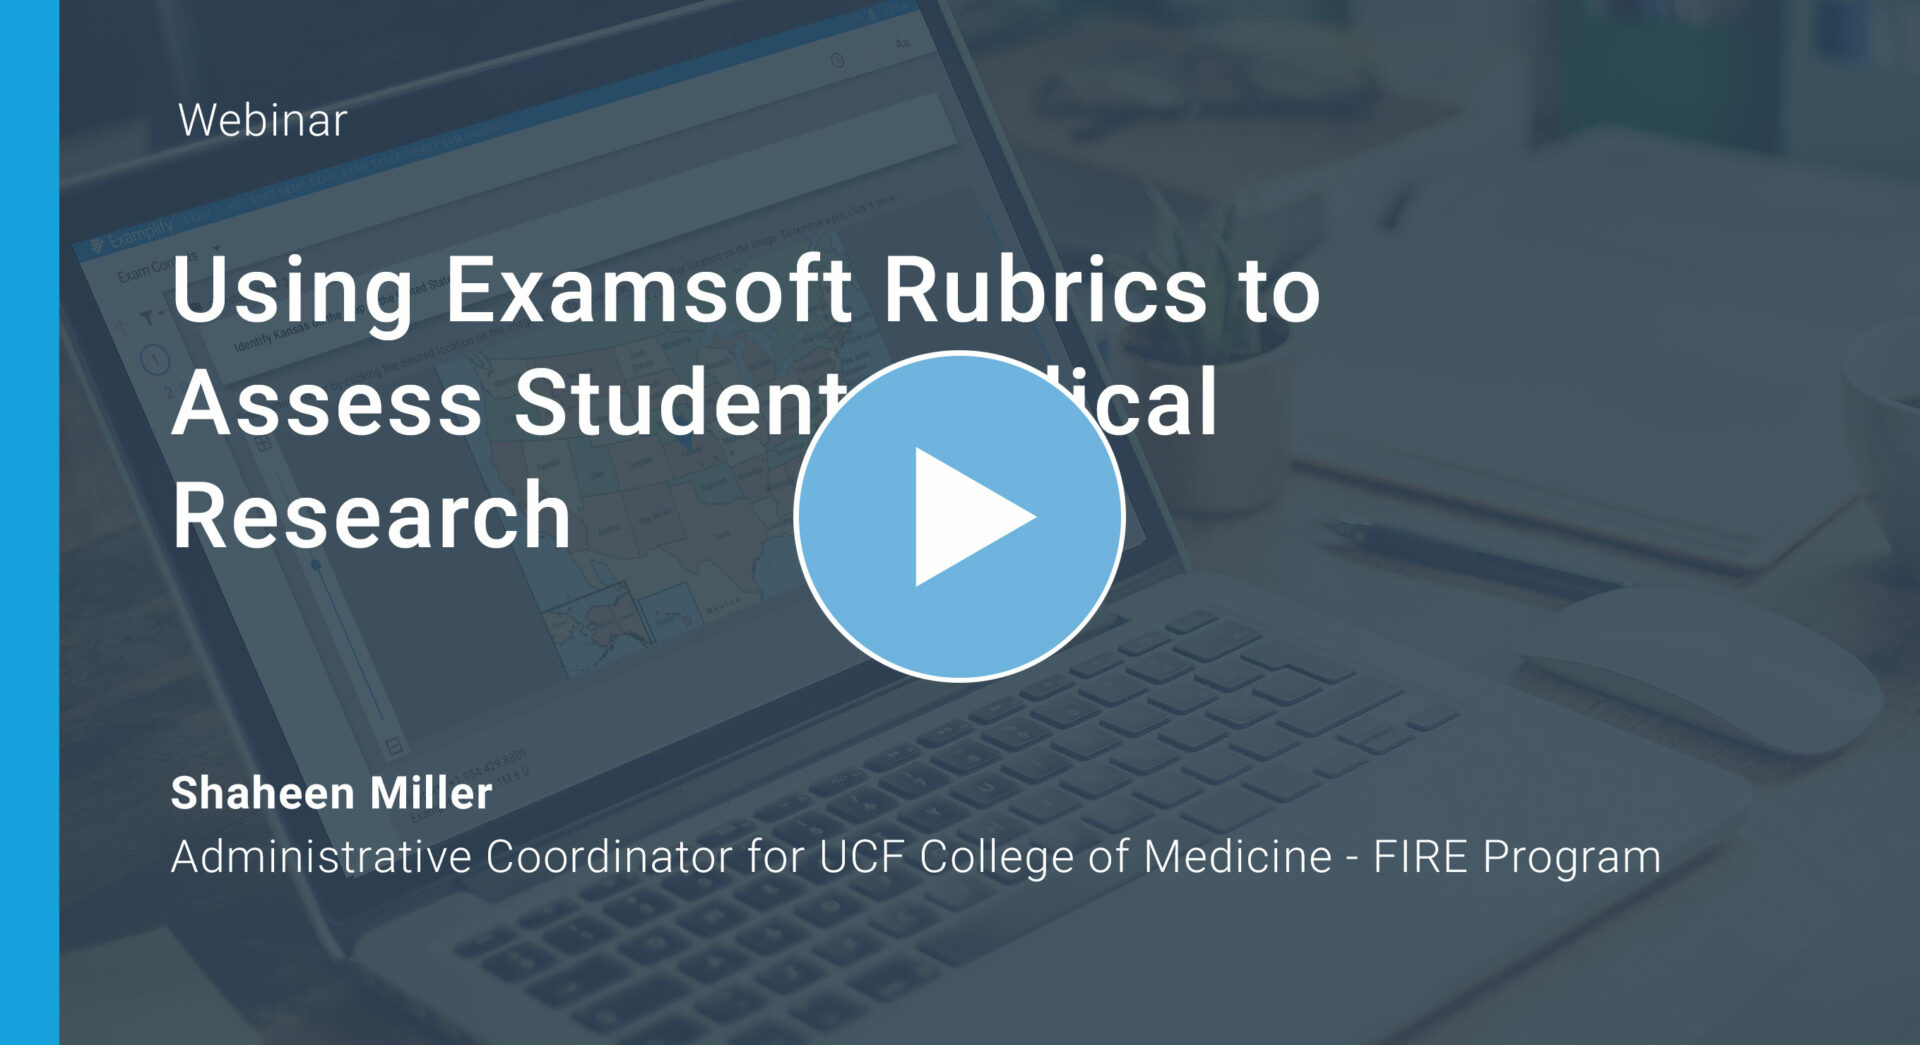 Using Examsoft Rubrics to Assess Student Medical Research